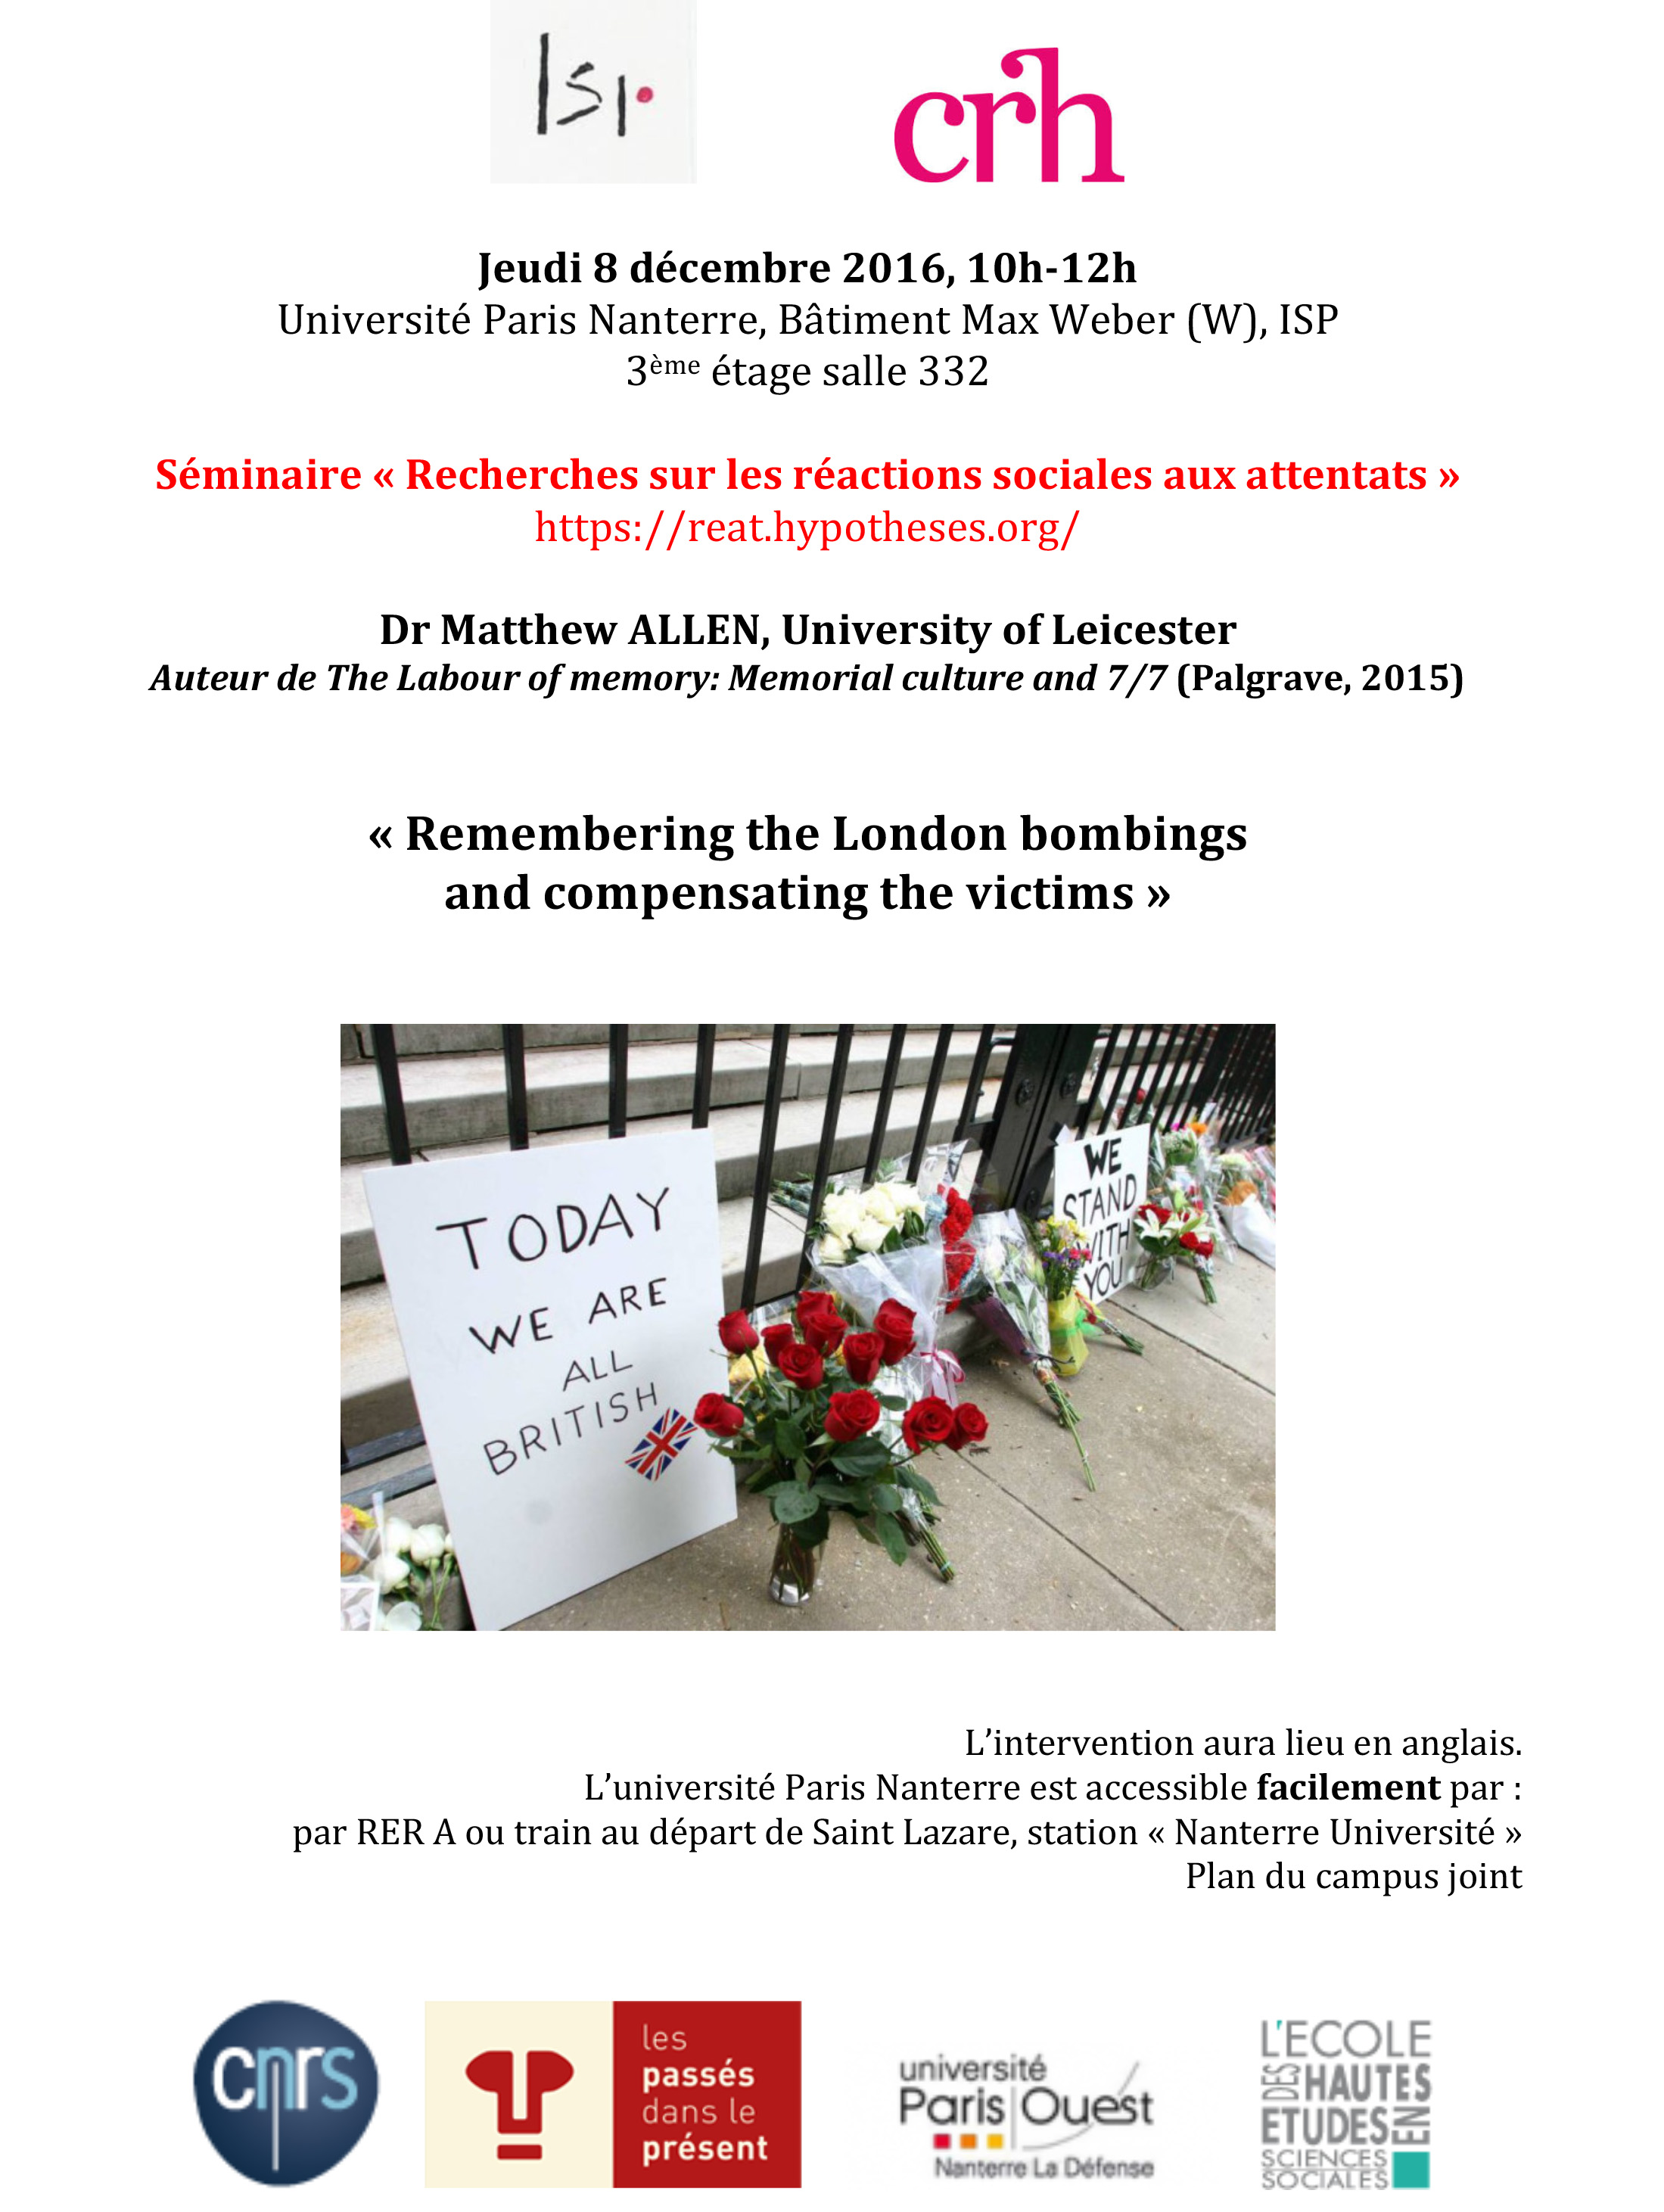 Remembering the London bombings and compensating the victims